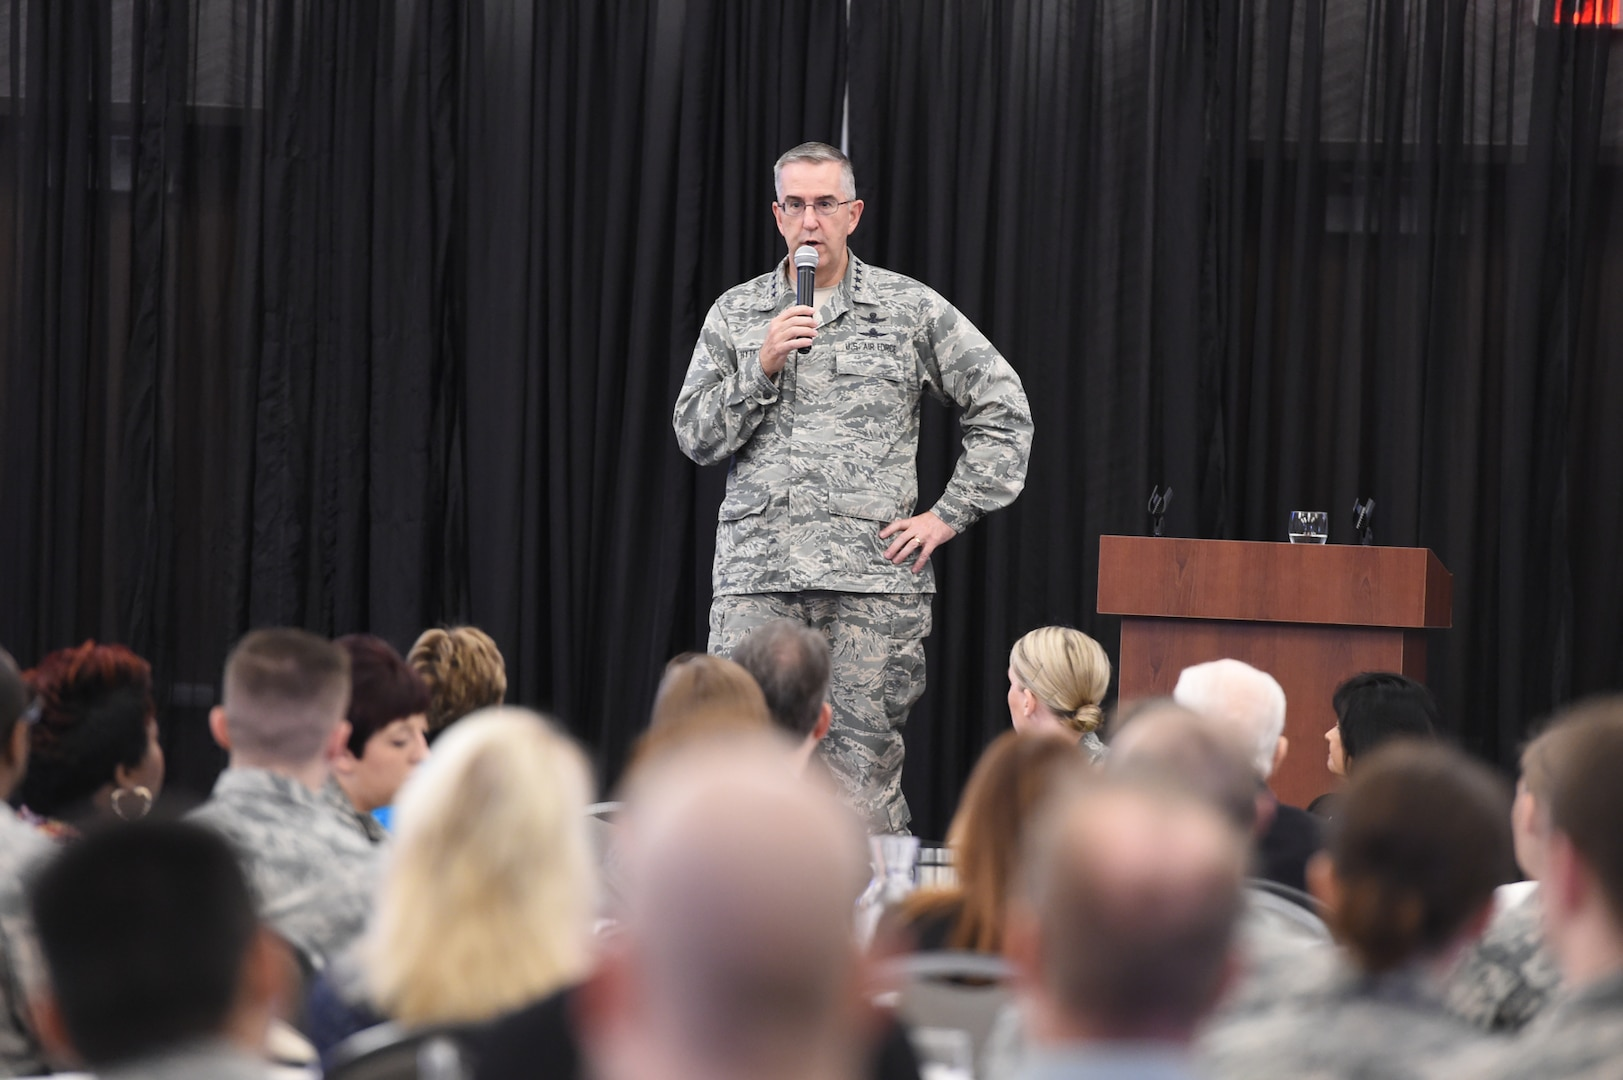 """U.S. Air Force Gen. John Hyten, commander of U.S. Strategic Command (USSTRATCOM) gives welcoming remarks to attendees of the 2nd annual """"Empowering Tomorrow's Leaders"""" conference at the Beardmore Event Center in Bellevue, Neb., May 7, 2018. More than 300 attendees, nominated by their leadership, attended the all-day event. The theme this year was """"Igniting Innovation: How to Go Faster"""" featuring speakers and panelists to inspire out-of-the box thinking. (U.S. Navy photo by Mass Communication Specialist 1st Class Julie R. Matyascik)"""